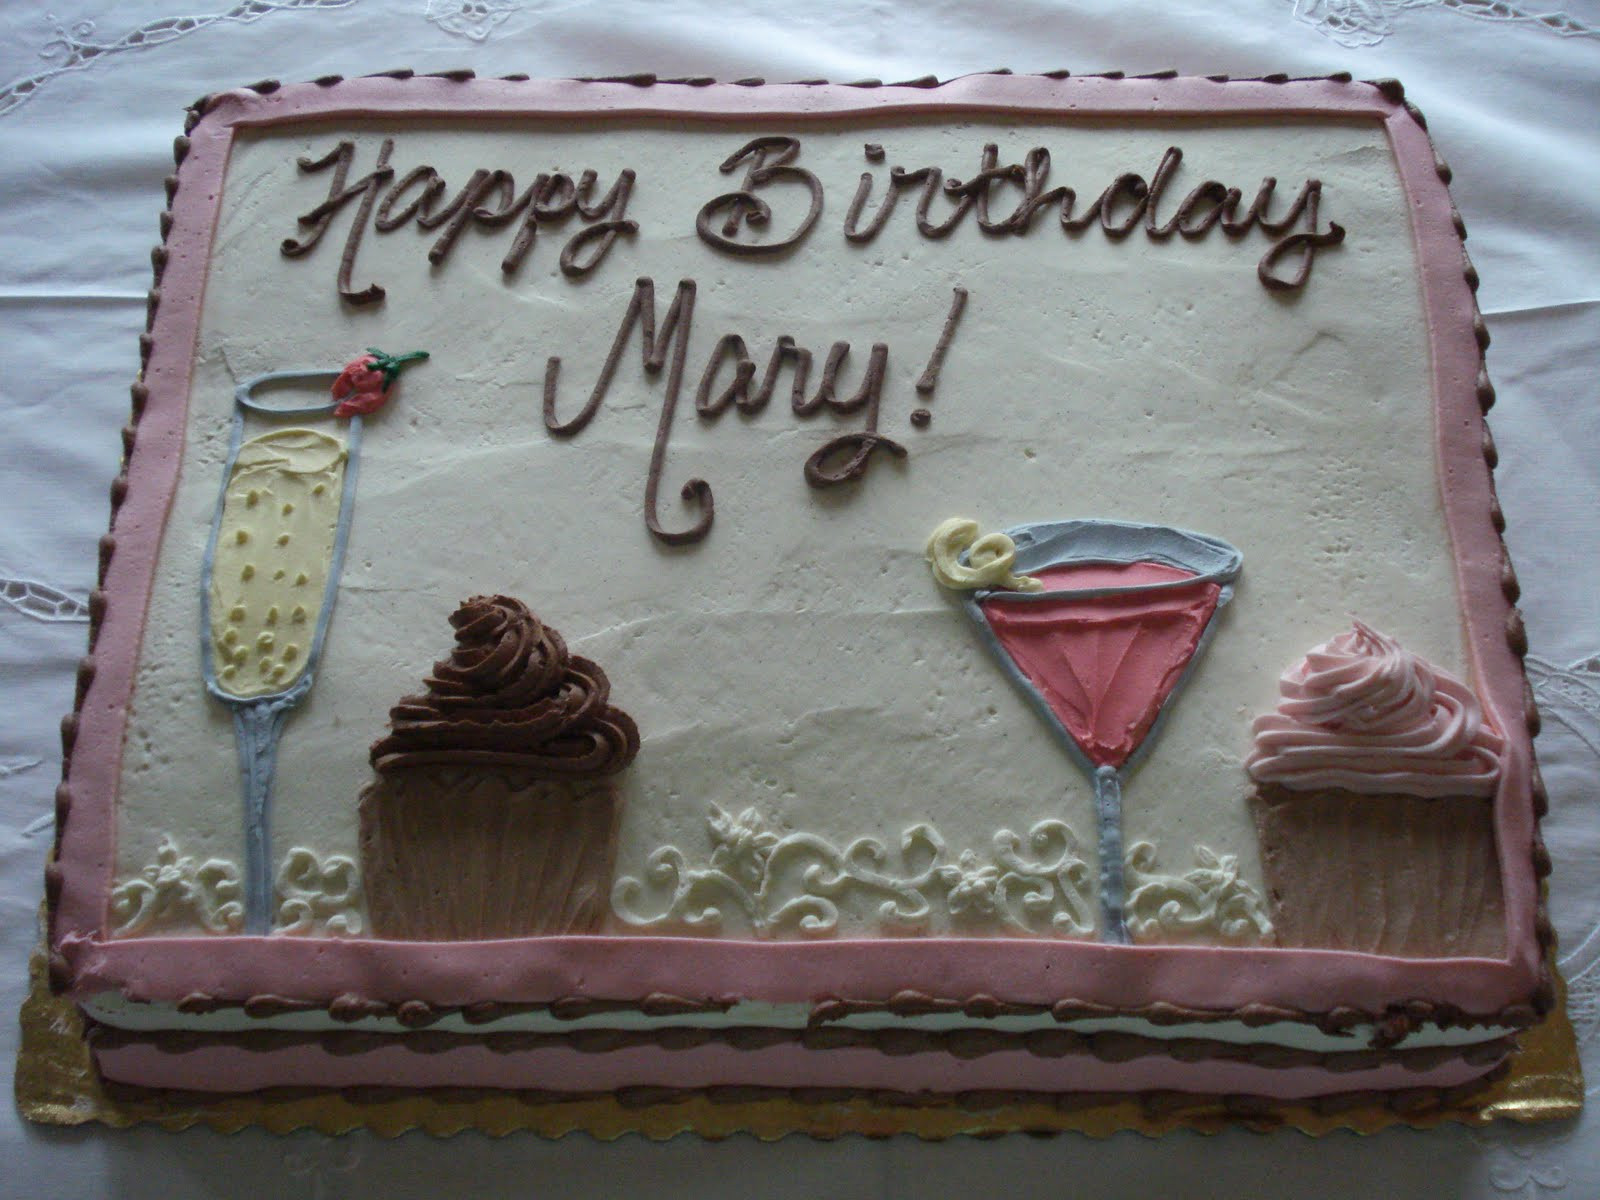 Best ideas about Happy Birthday Mary Funny . Save or Pin Happy Birthday Mary Now.